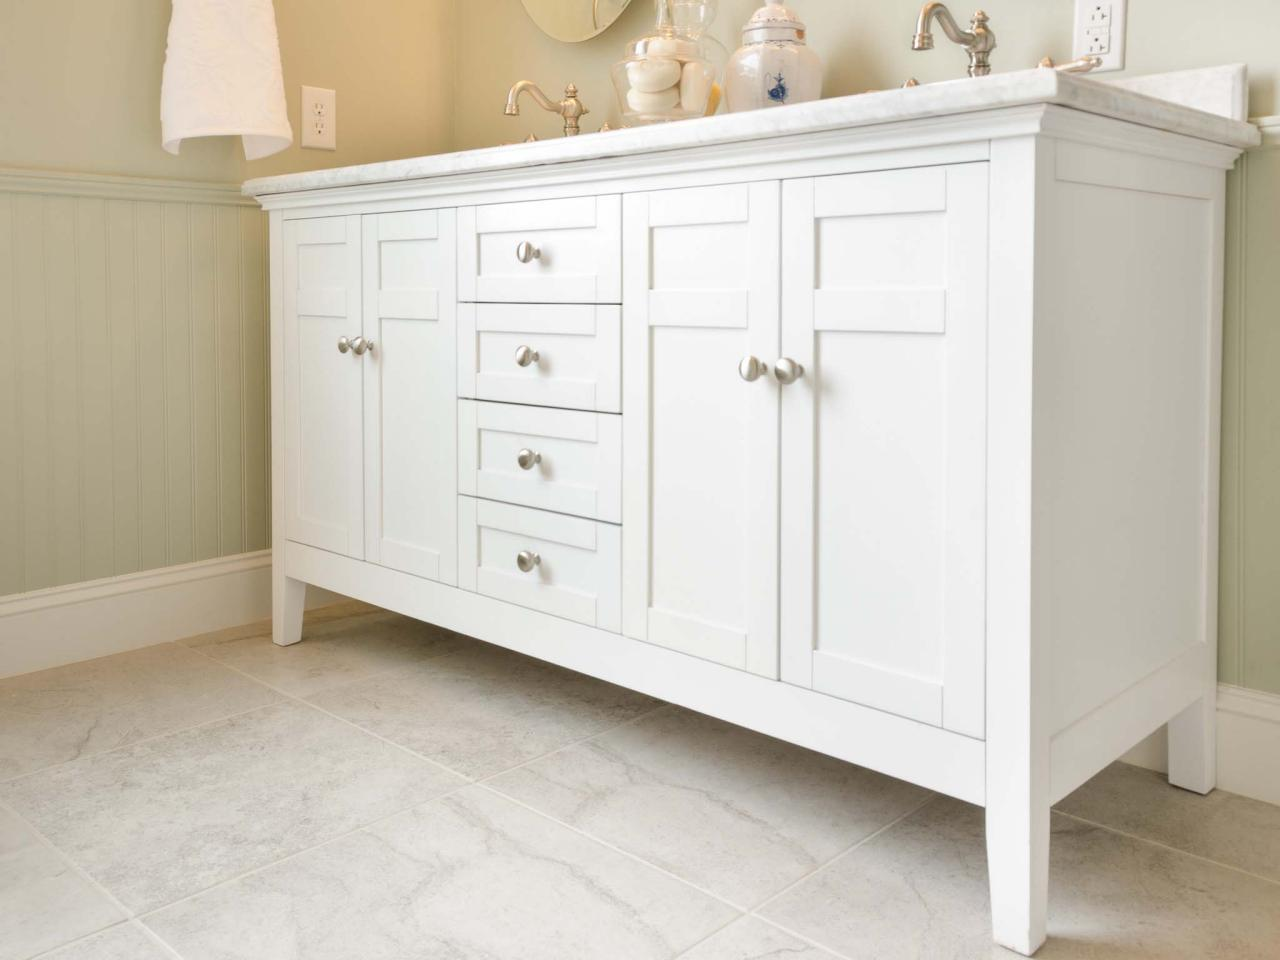 Guide to Selecting Bathroom Cabinets | DIY